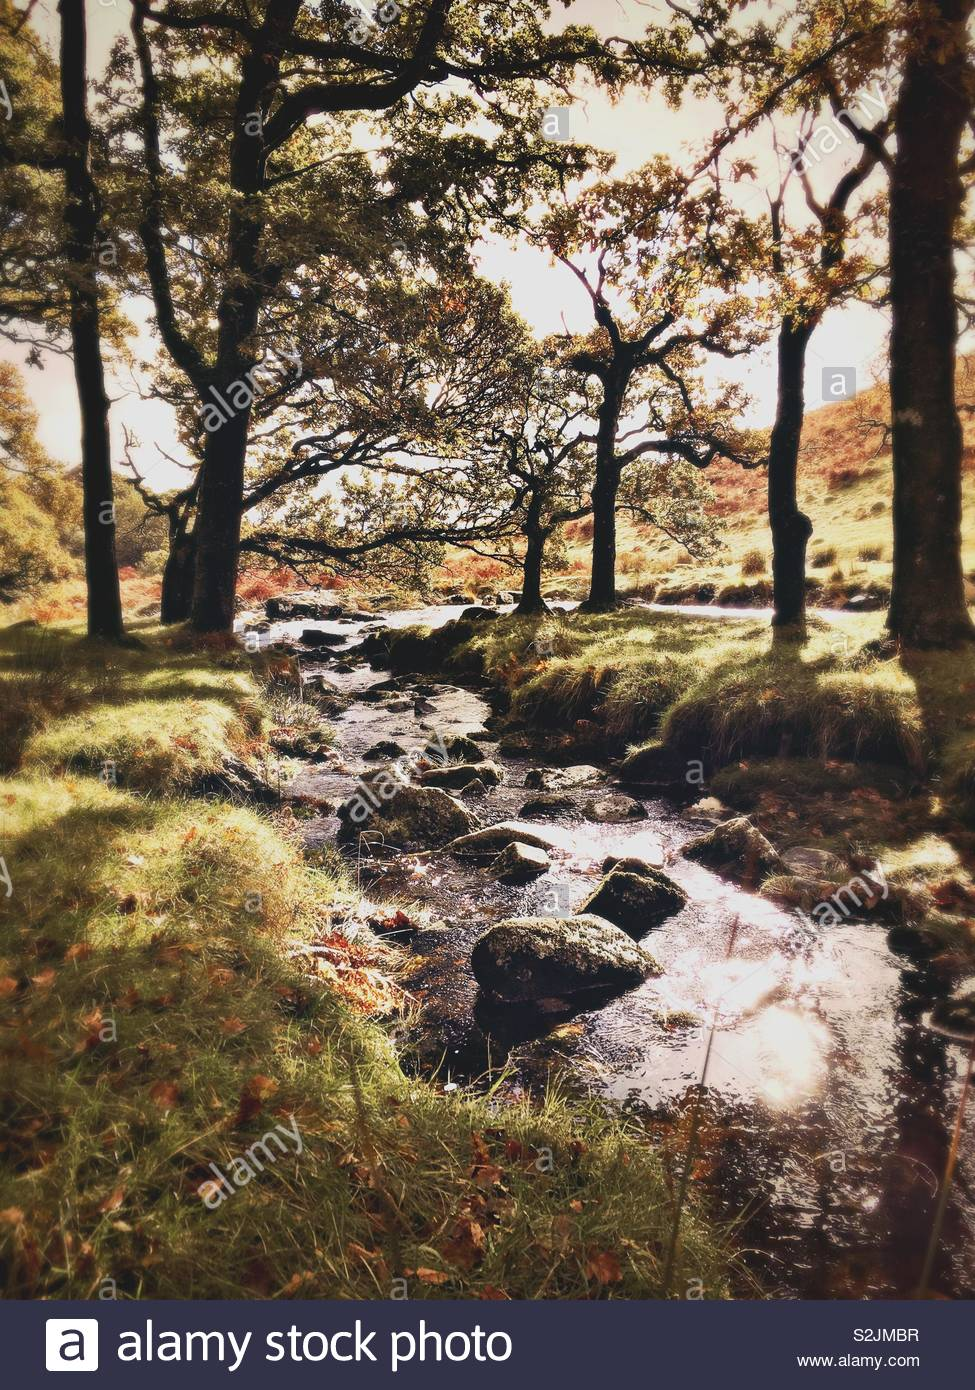 River Erme, Dartmoor - Stock Image